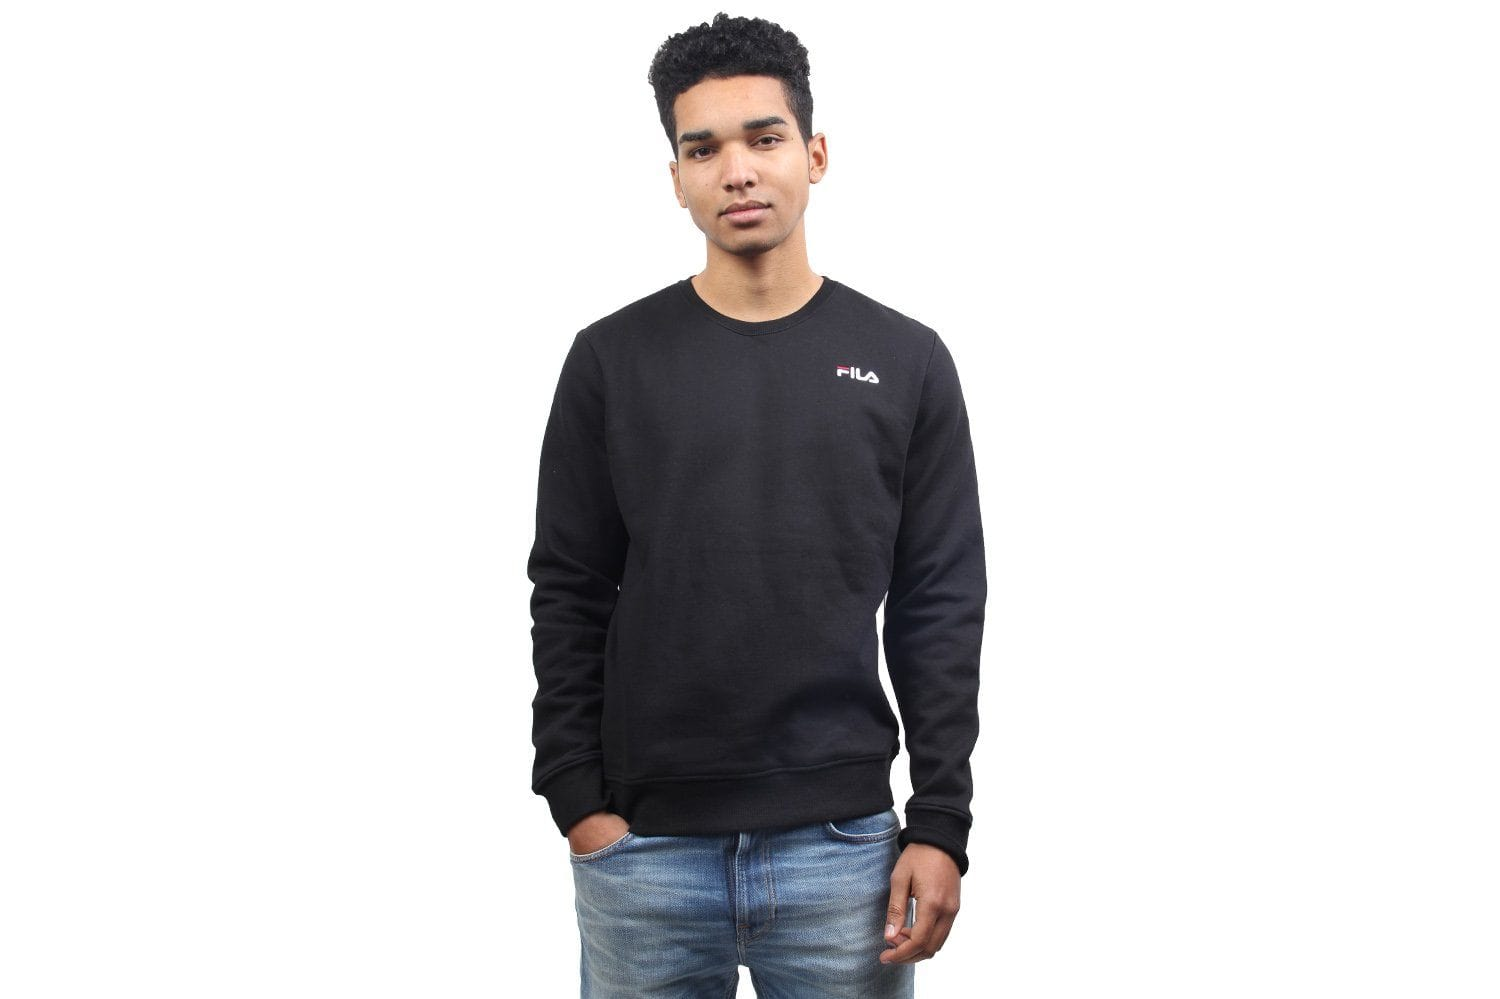 COLONA SWEATSHIRT - LM183503